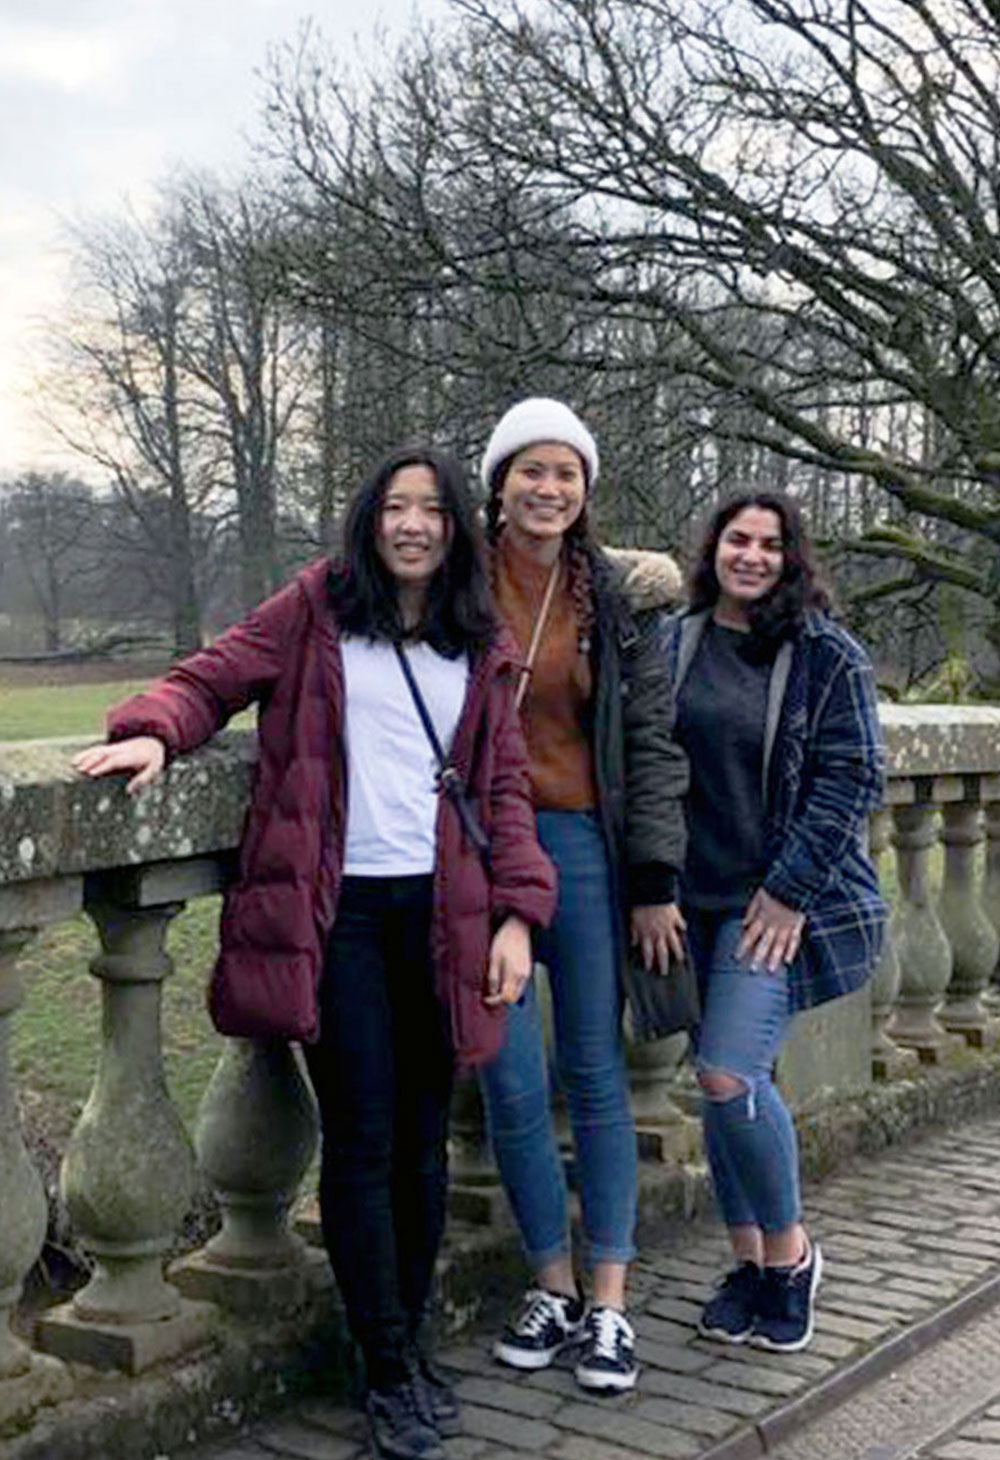 Christine Choy smiling at the camera with two friiends standing on a bridge over a river in parkland, Glasgow